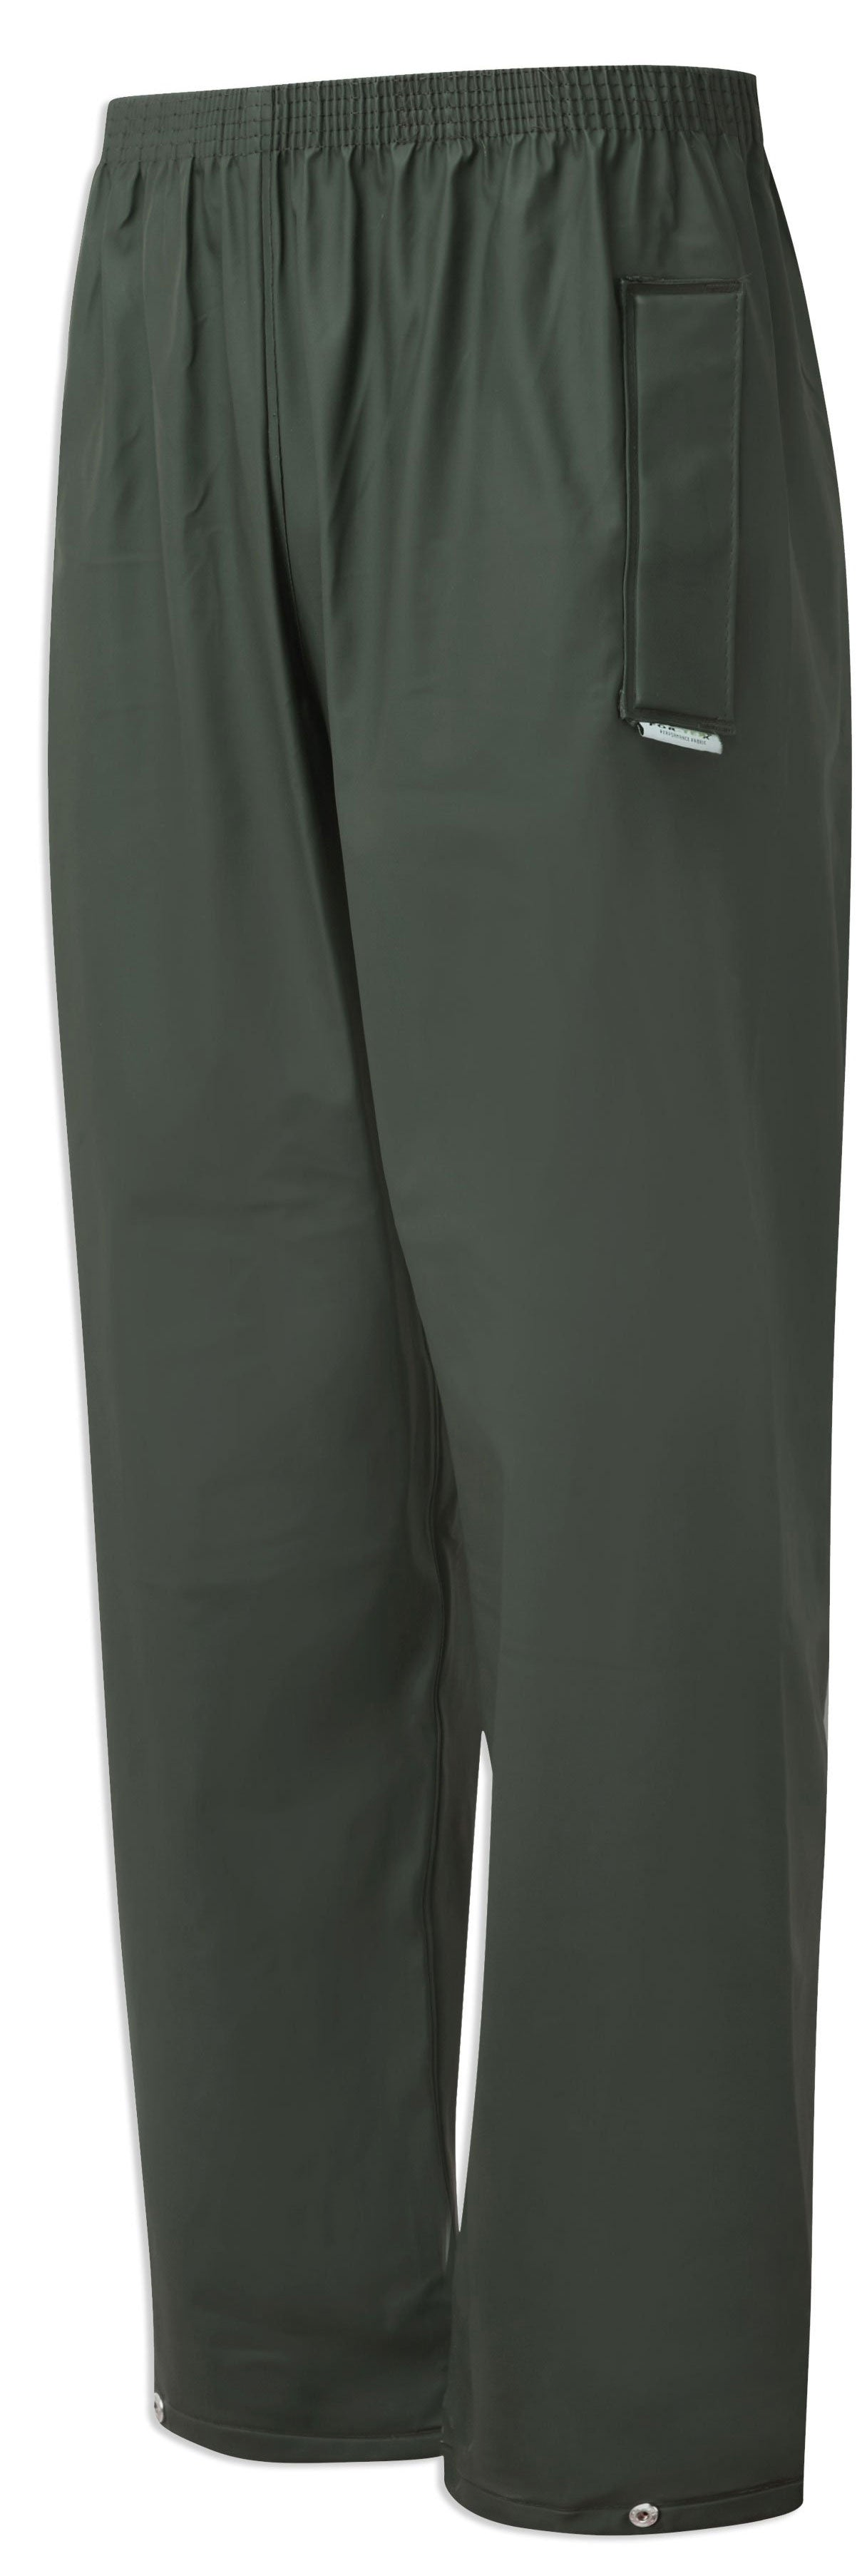 Castle Fortex Flex Waterproof Trousers in olive green